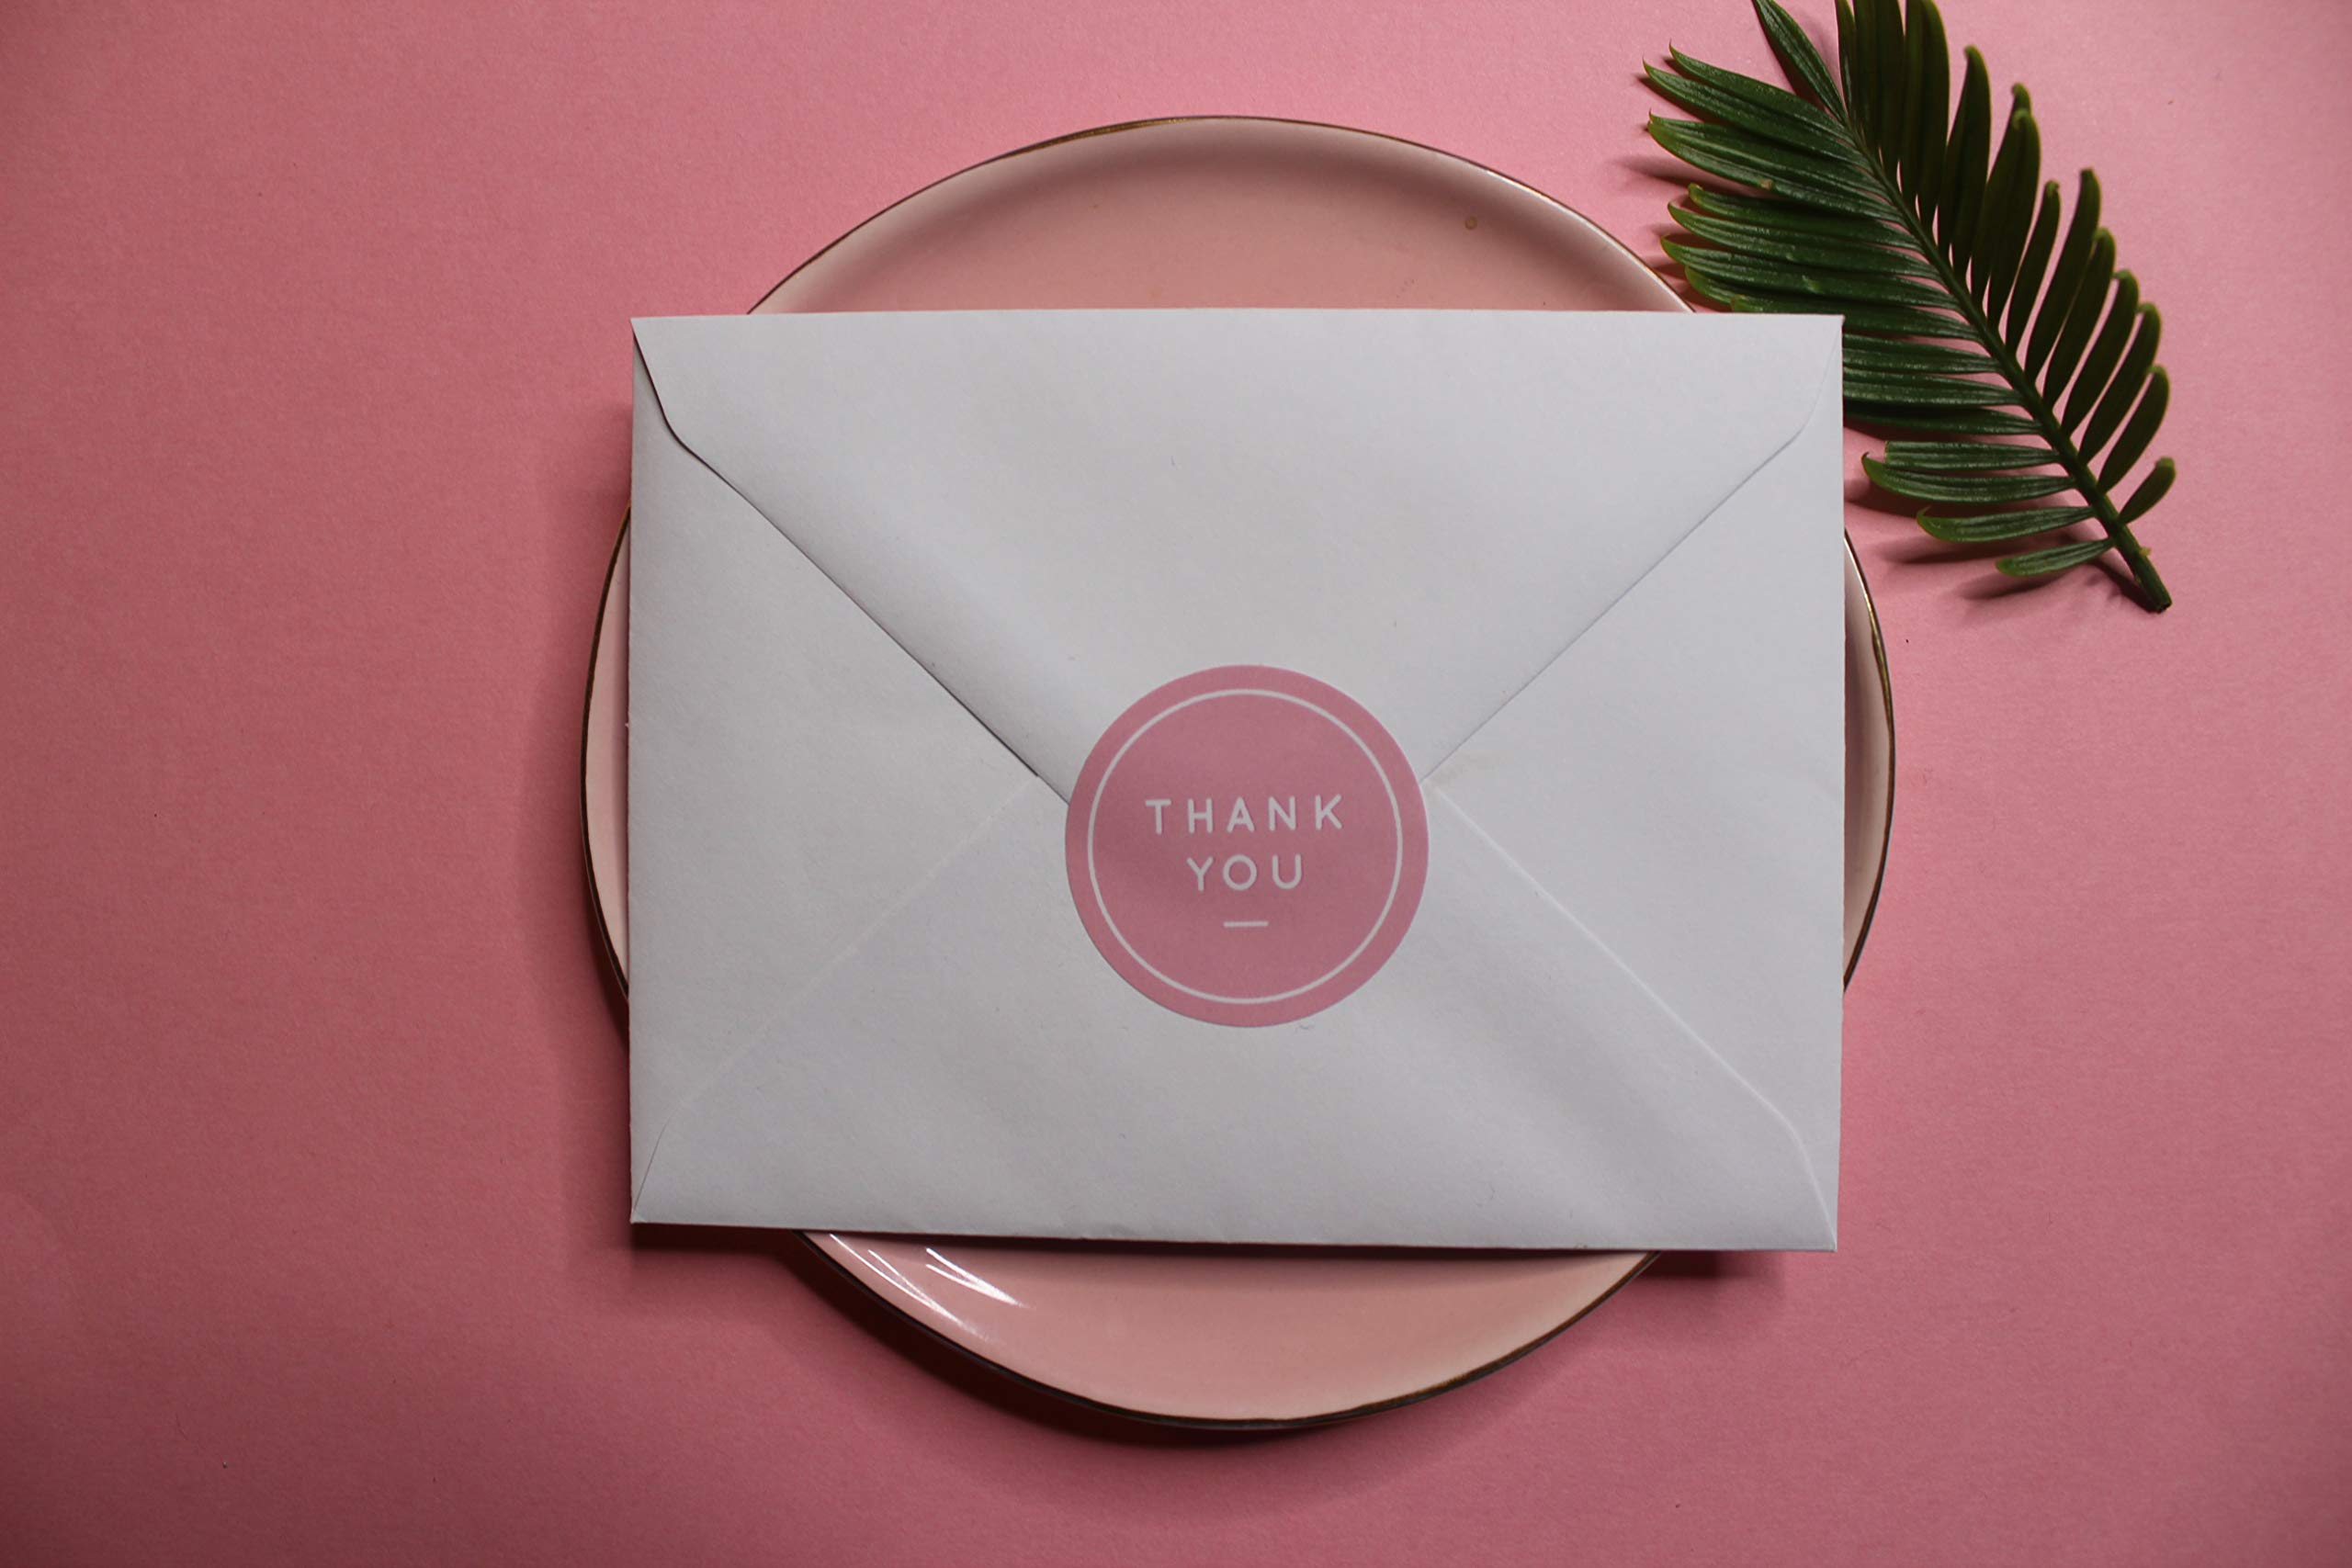 PAPERLILY Thank You Stickers - 1.5'' | 500 Pink Labels Per Roll by Paperlily